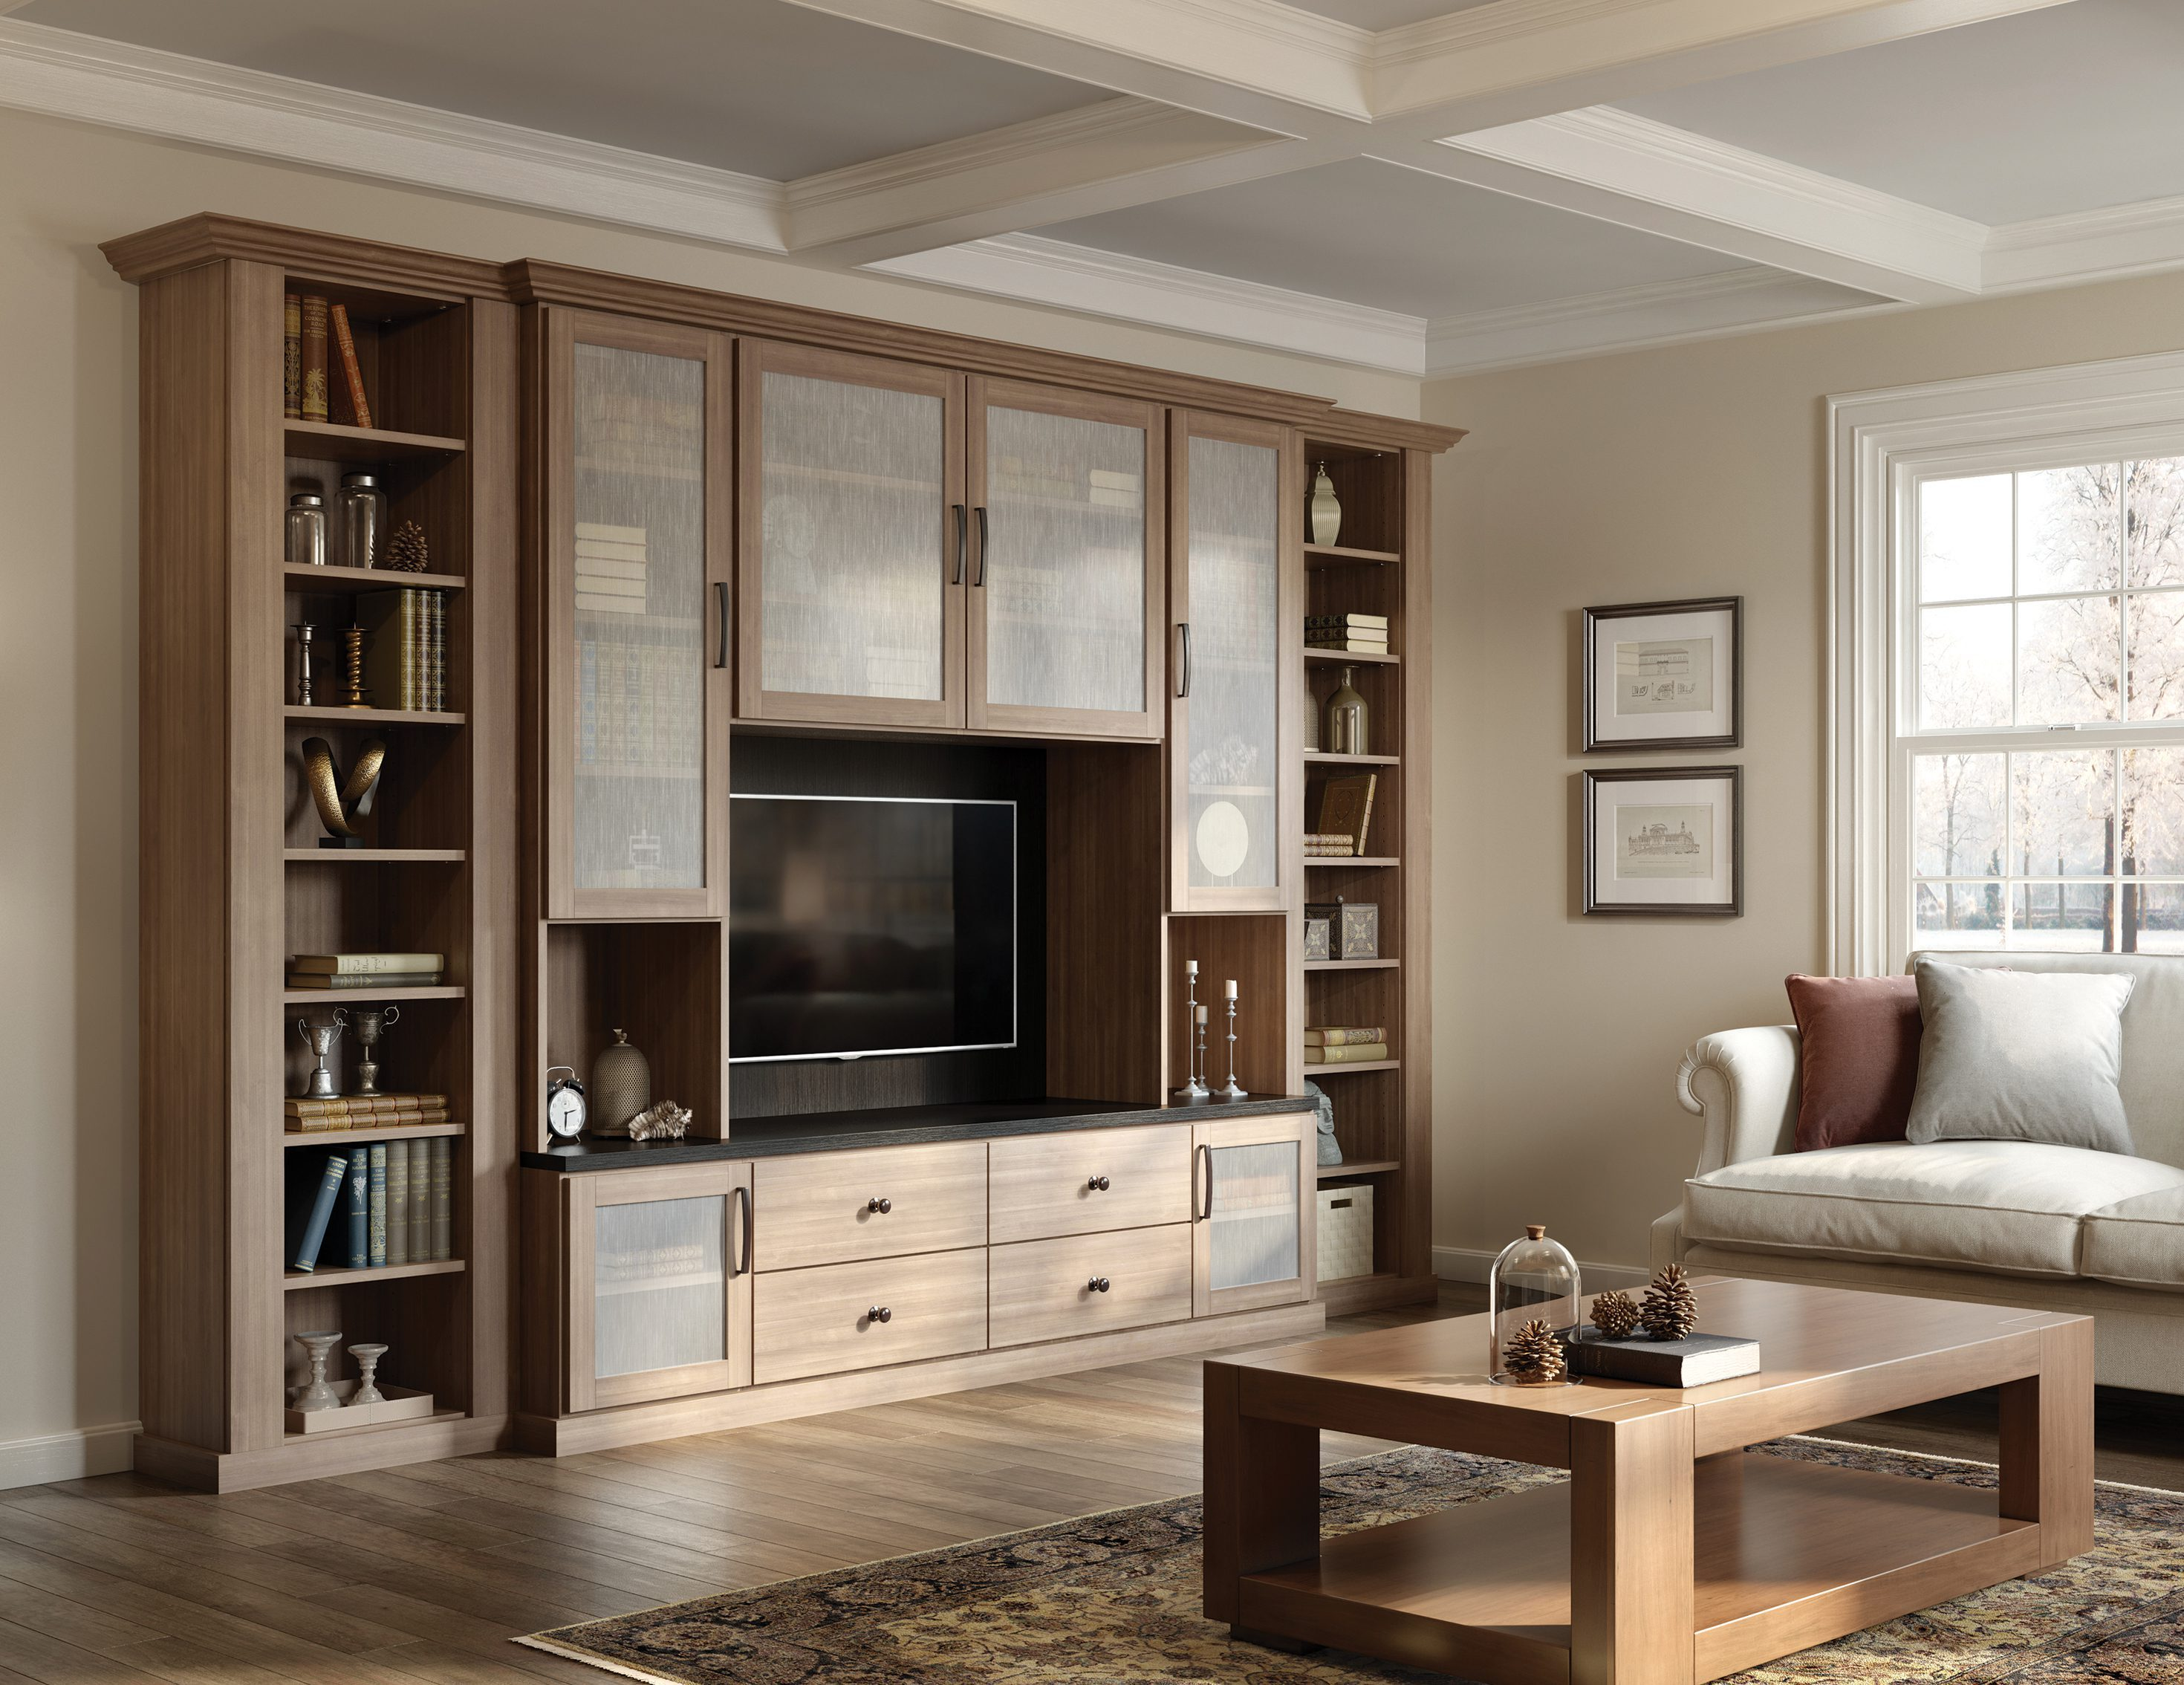 Built-in Entertainment Centers & Media Cabinets ...